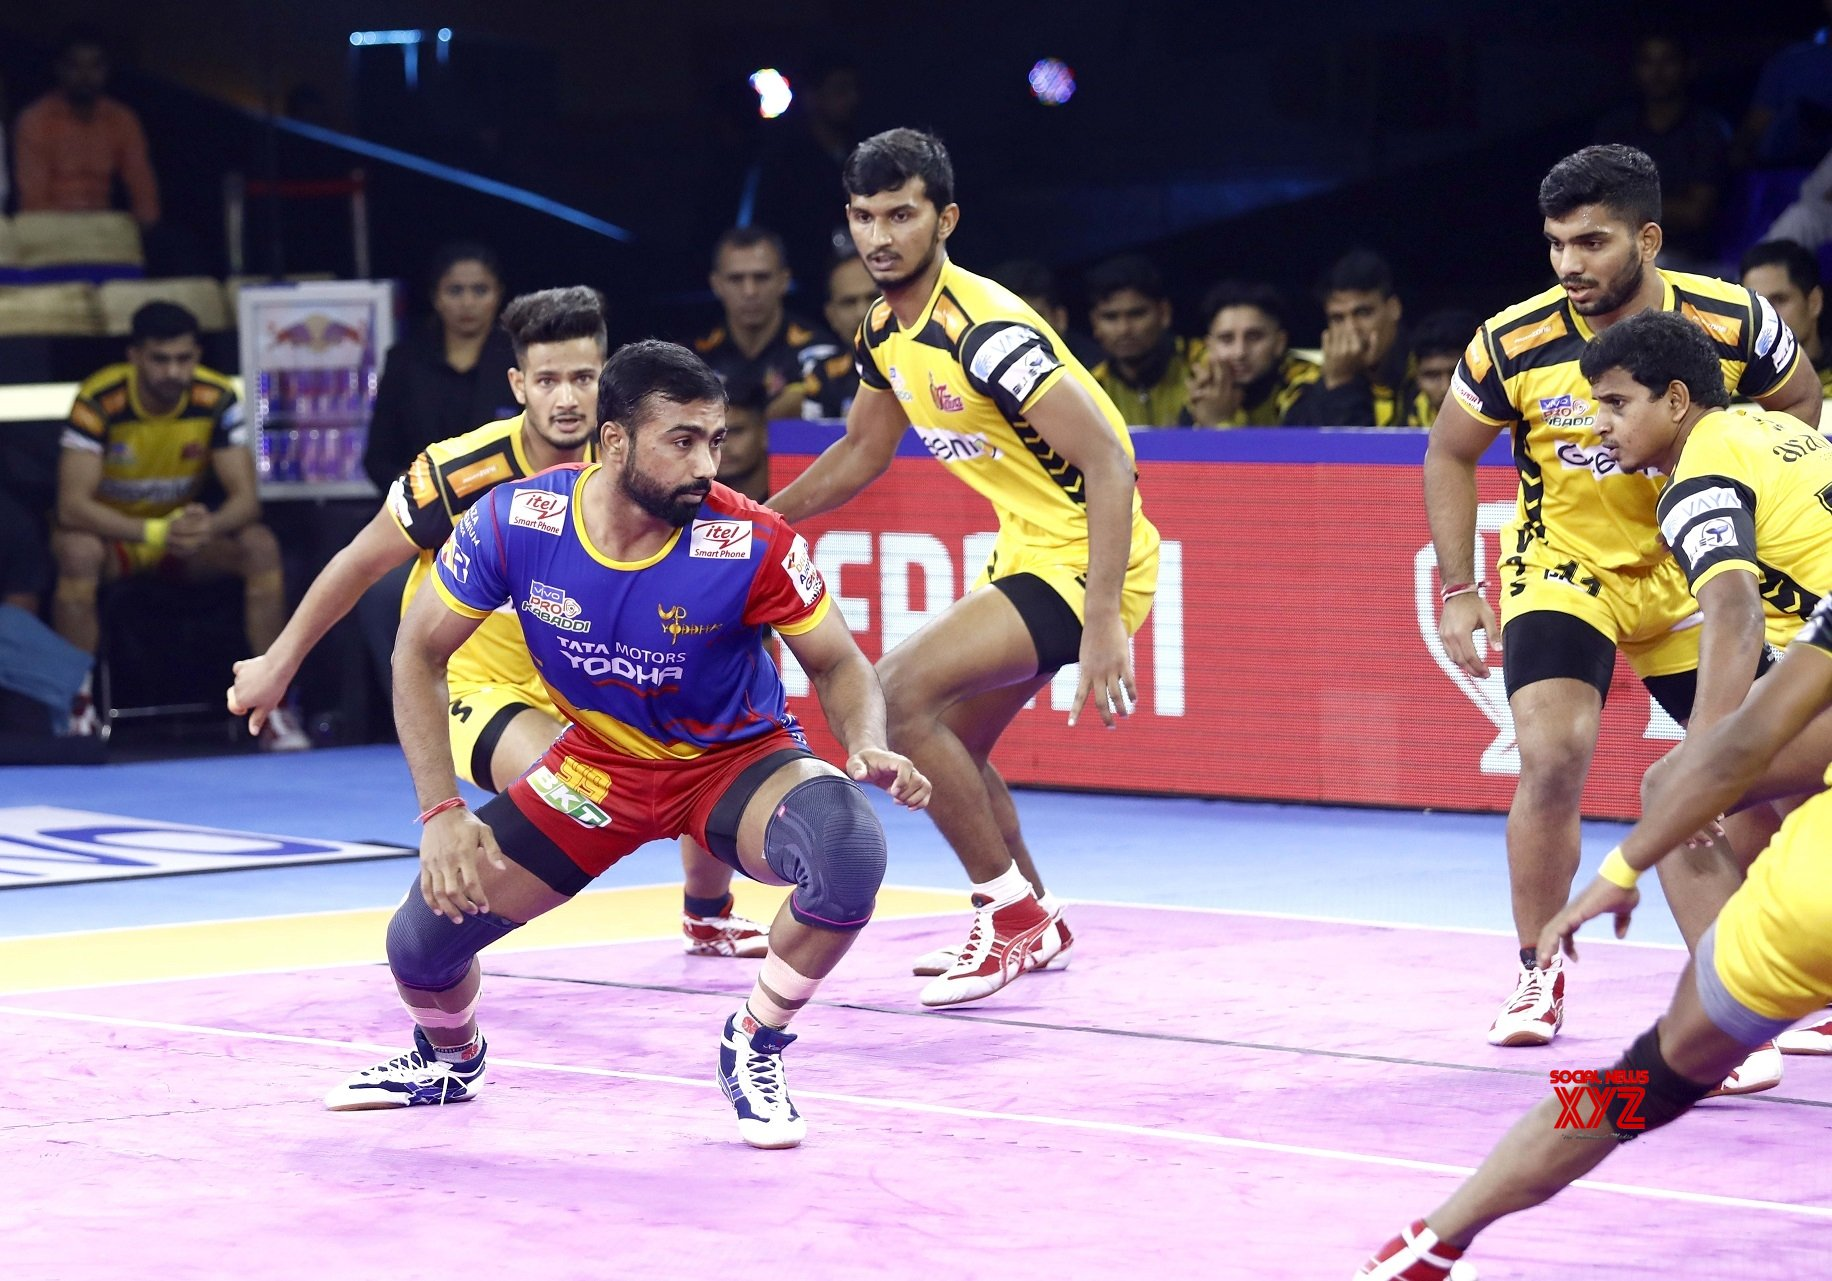 Greater Noida: Pro Kabaddi Season 7 - UP Yoddha vs Telugu Titans #Gallery